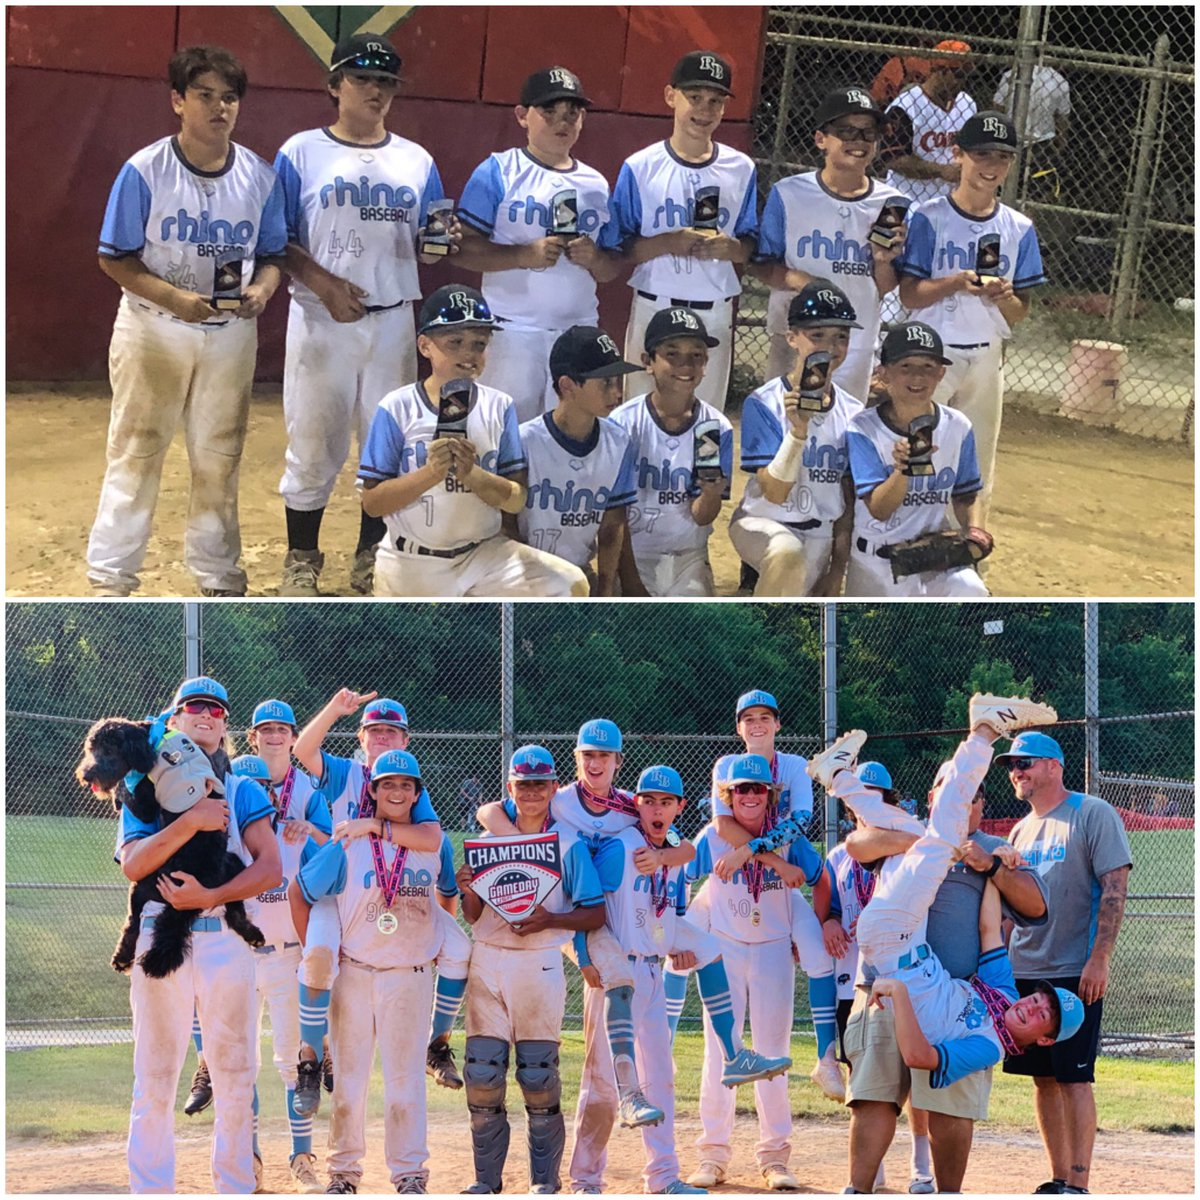 Last two weekends of youth tournys have been fire 🔥! 11u Boersma b2b weekends w/ championships. 14u Barrowman w/ the 🚢. 10u McDonald CABA World Series Champs & ranked nationally. 9u Tomczak w/ the 🚢. 8u Vercelli w/ the 🚢. 13u Uldrych b2b weekends w/ runner up finish.